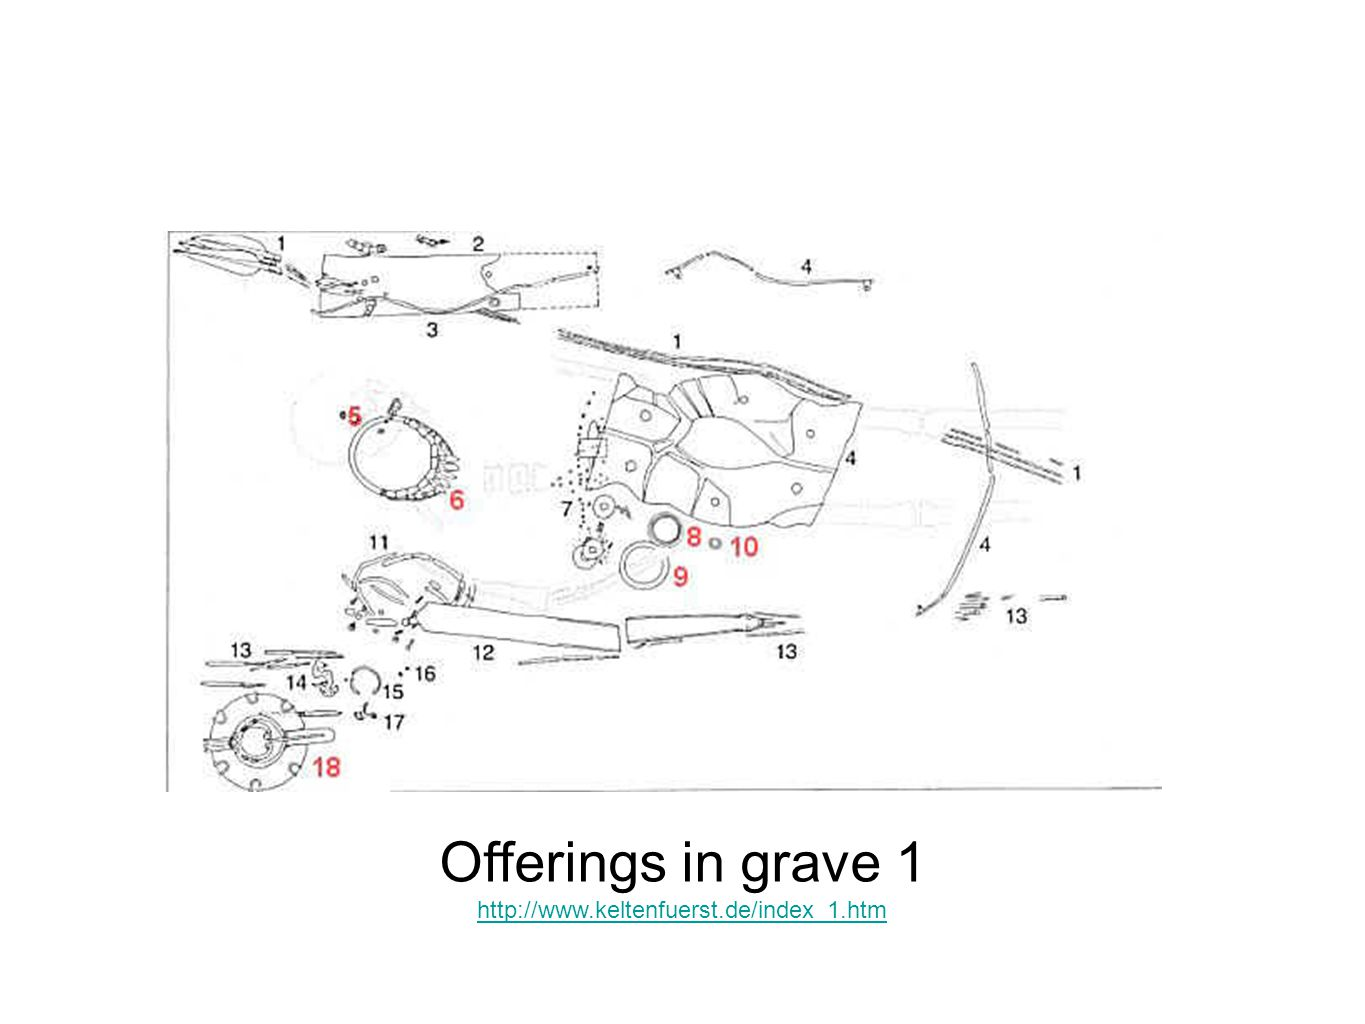 the offerings in inhumation grave 1 in this drawing,